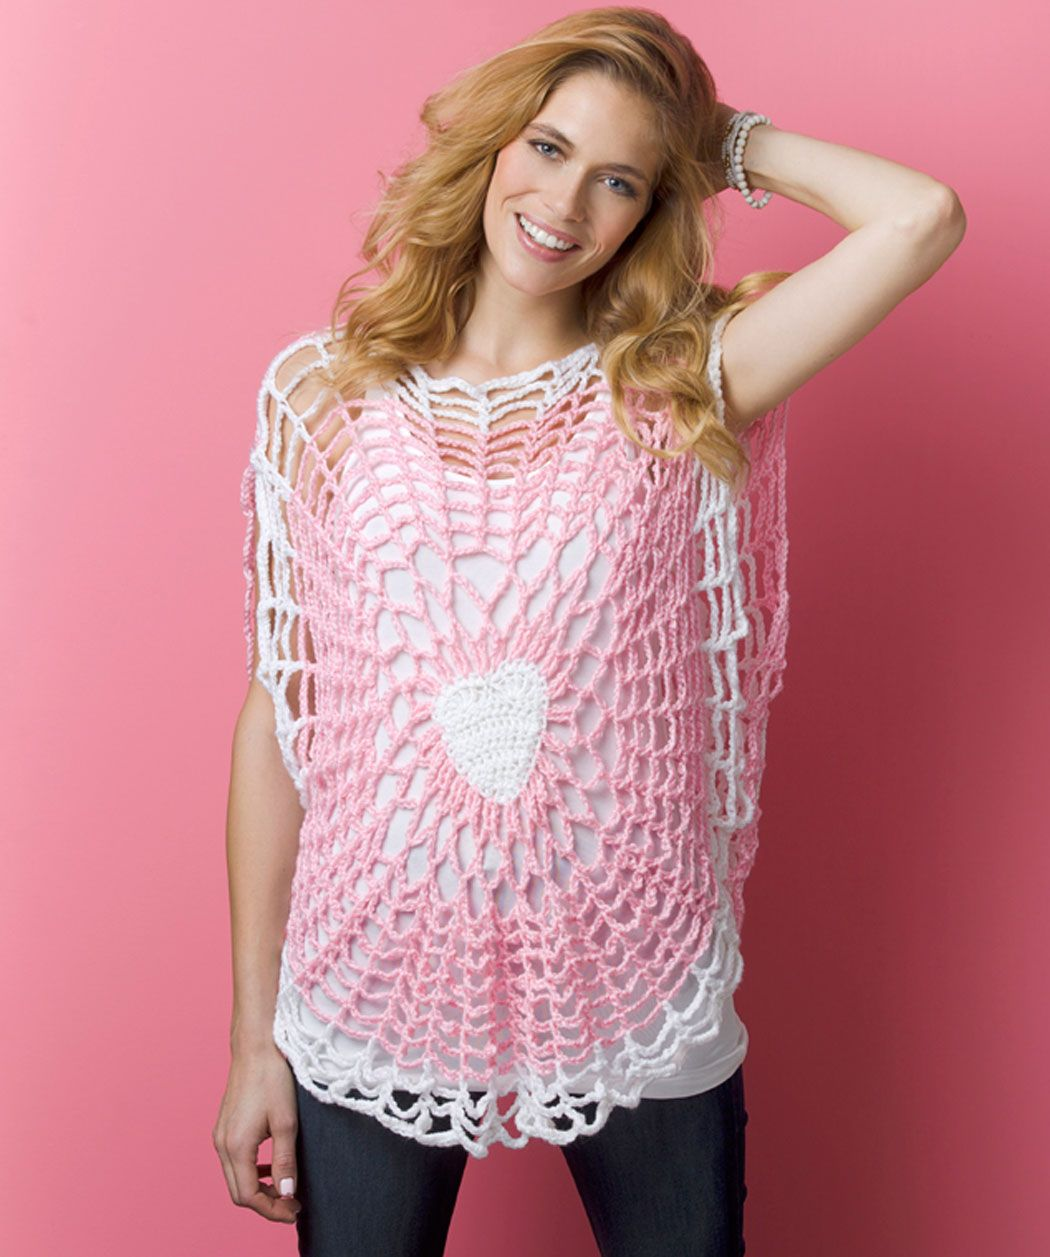 Lighthearted tunic hmmm think i found my next big project lighthearted tunic free crochet pattern from red heart yarns would be cute for valentines dayweek bankloansurffo Gallery